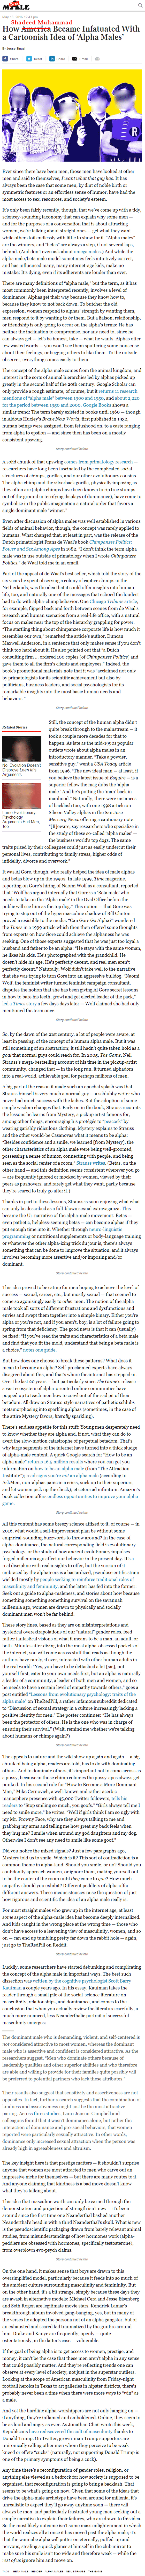 The Misguided Ikhwani Shadeed Muhammad: Part 4 - His 'Alpha Male